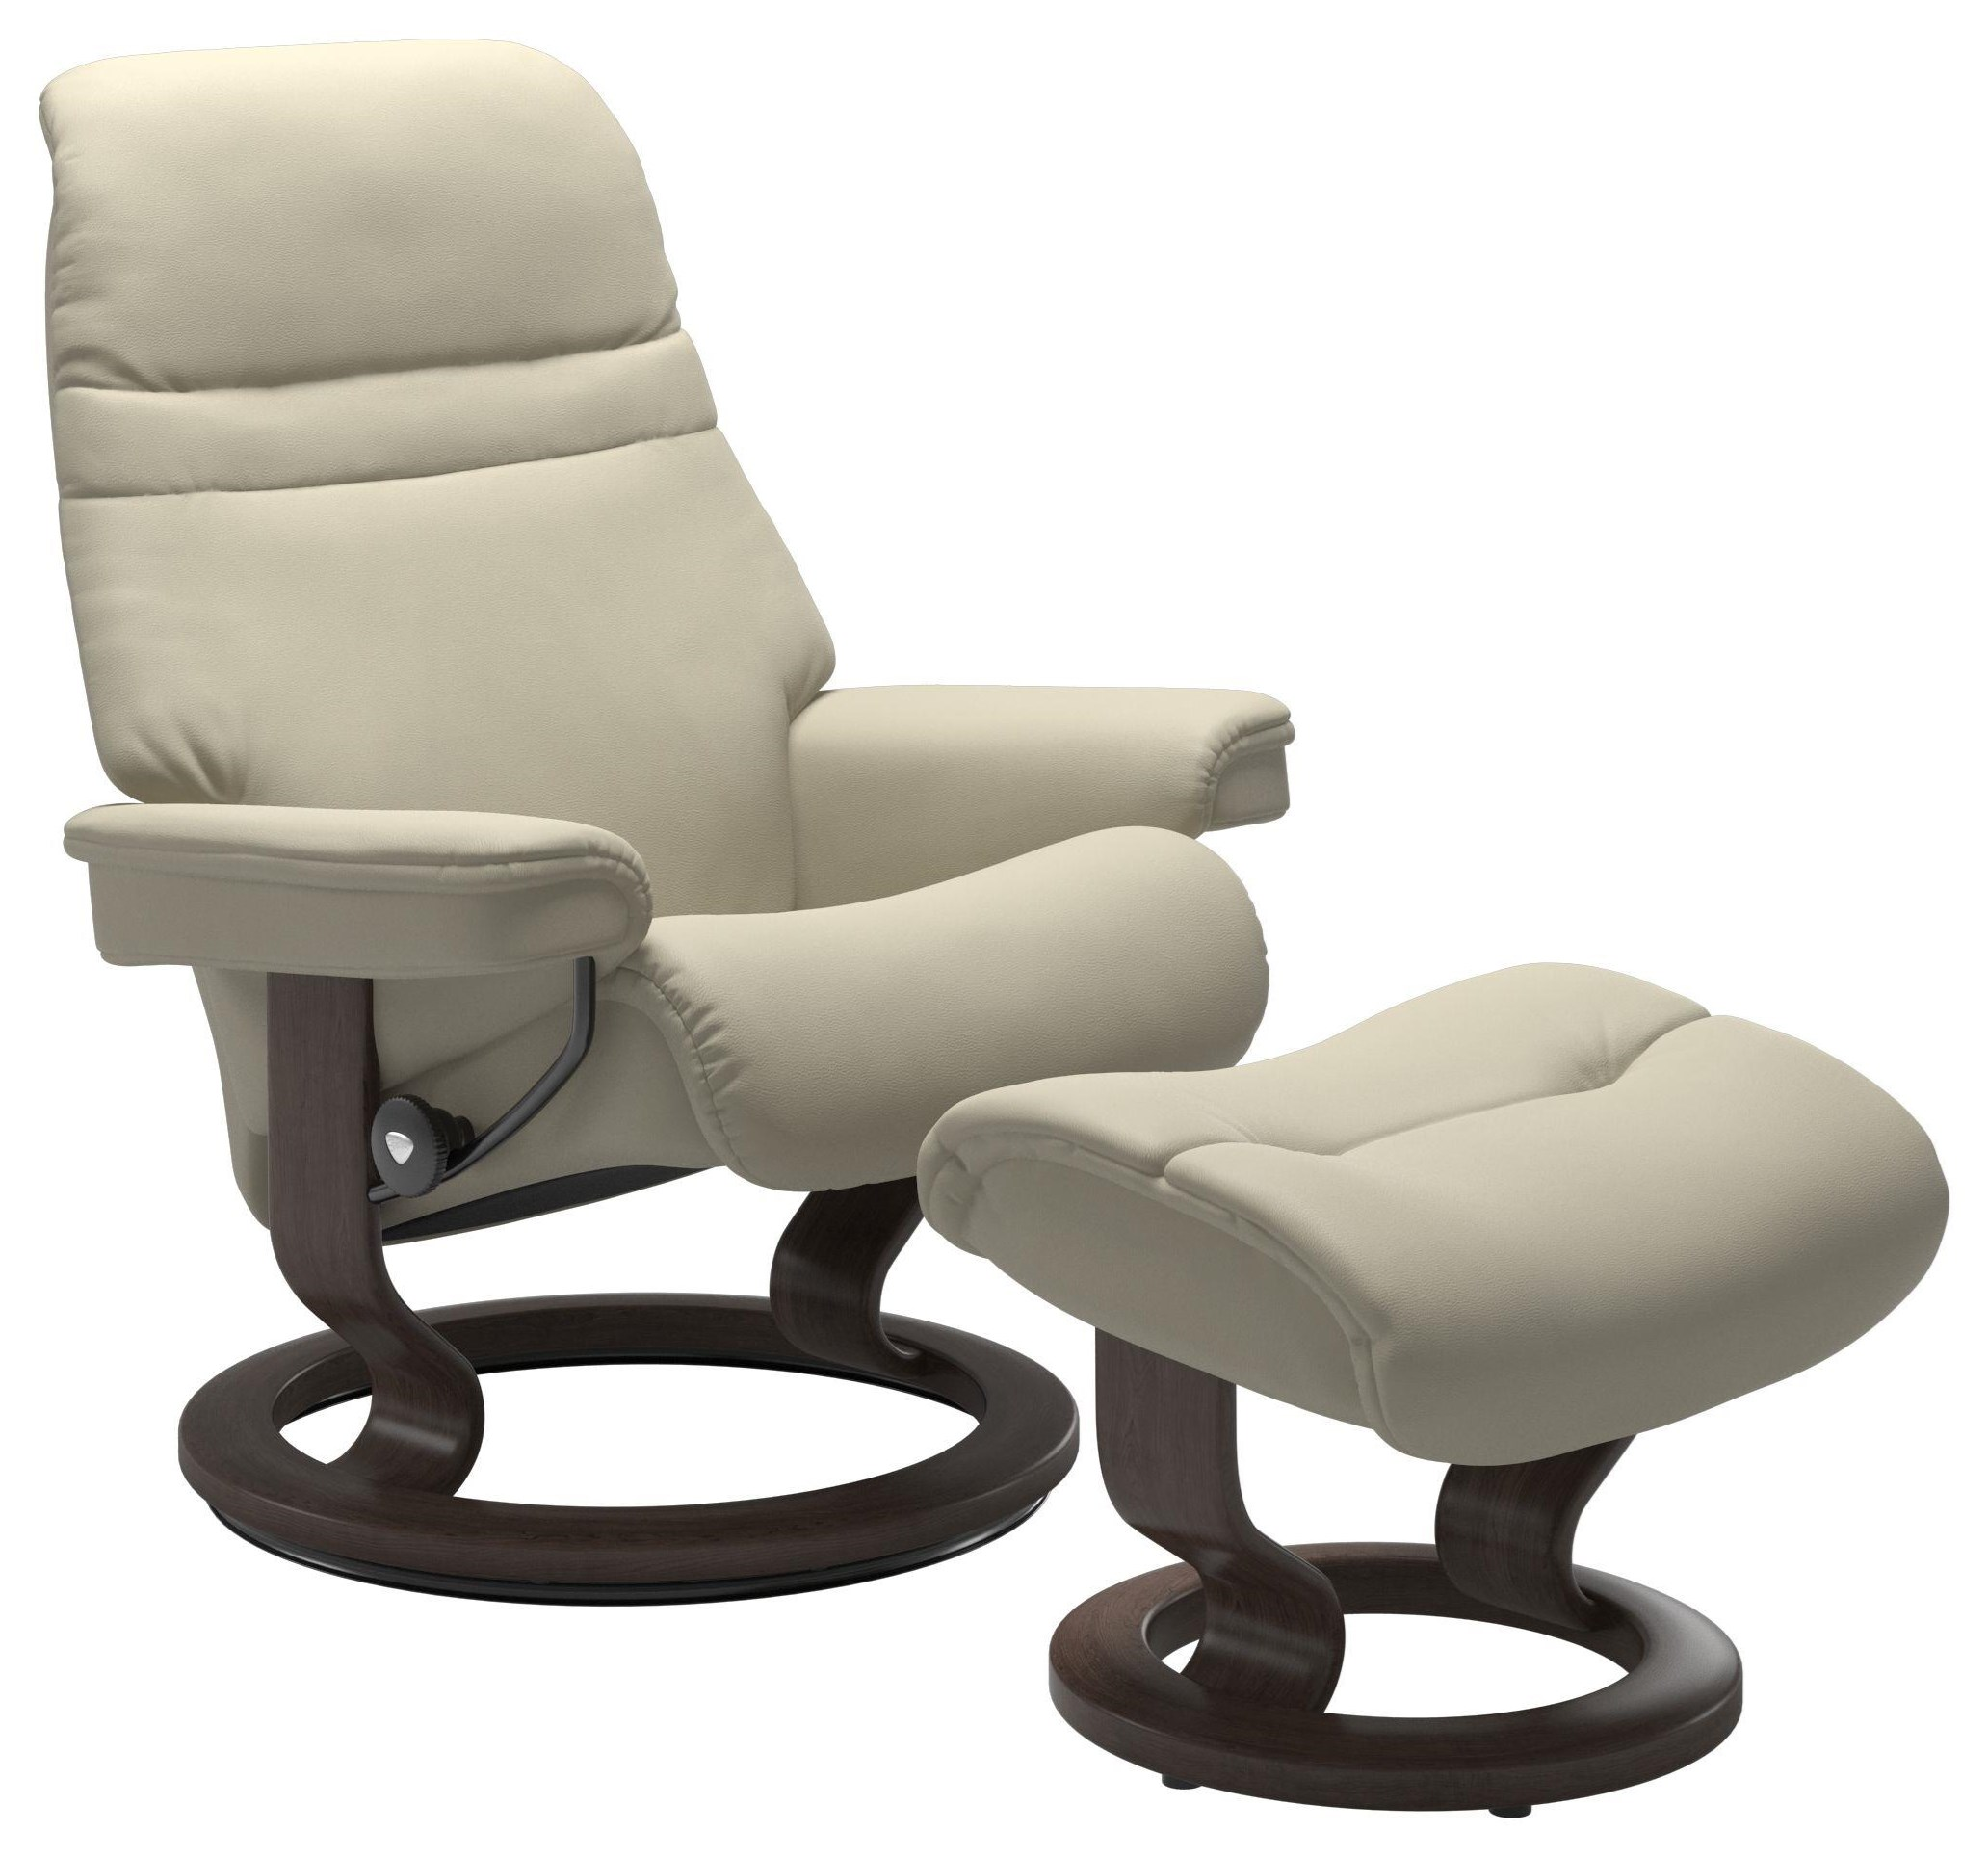 Sunrise Large Chair & Ottoman with Classic Base by Stressless at Upper Room Home Furnishings